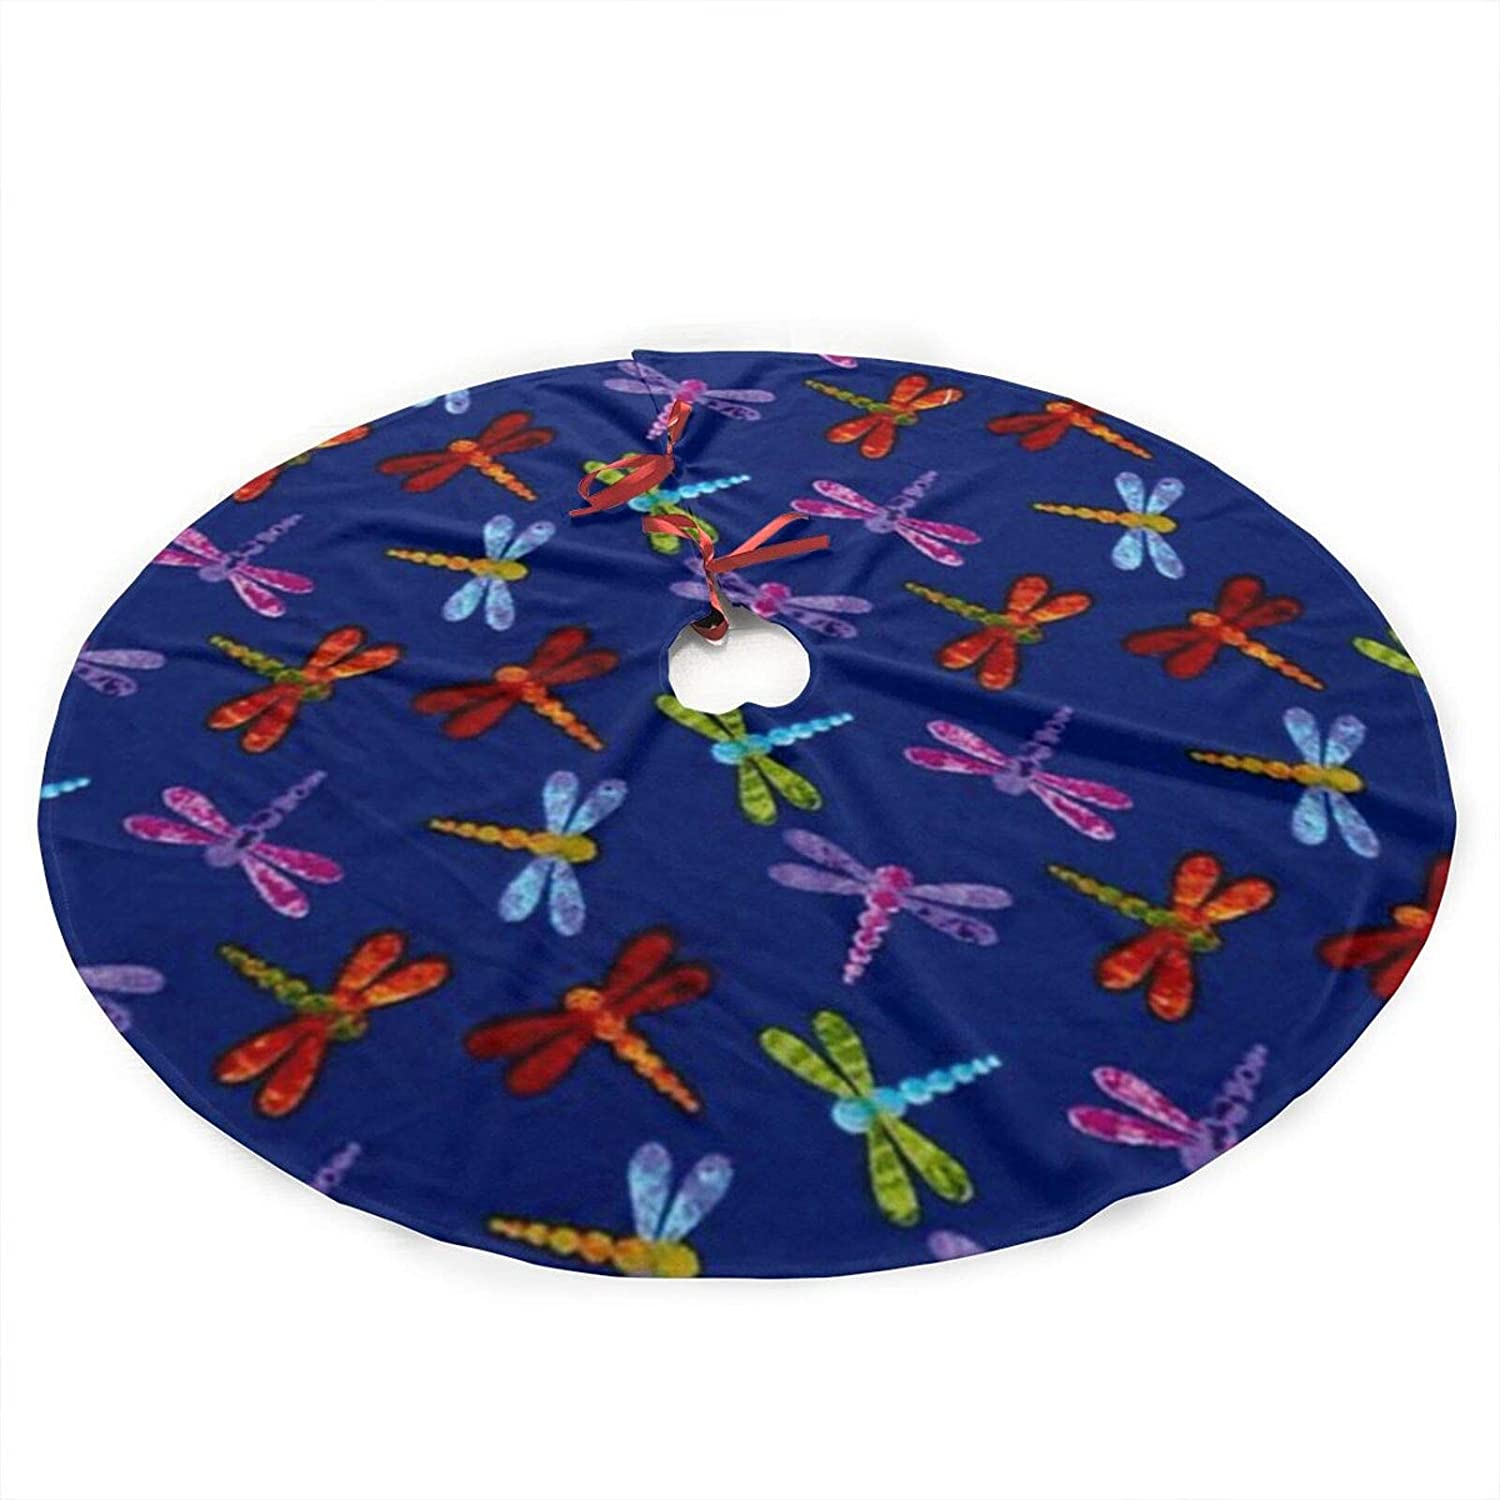 antcreptson Colorful Dragonfly Christmas Tree Skirt 36